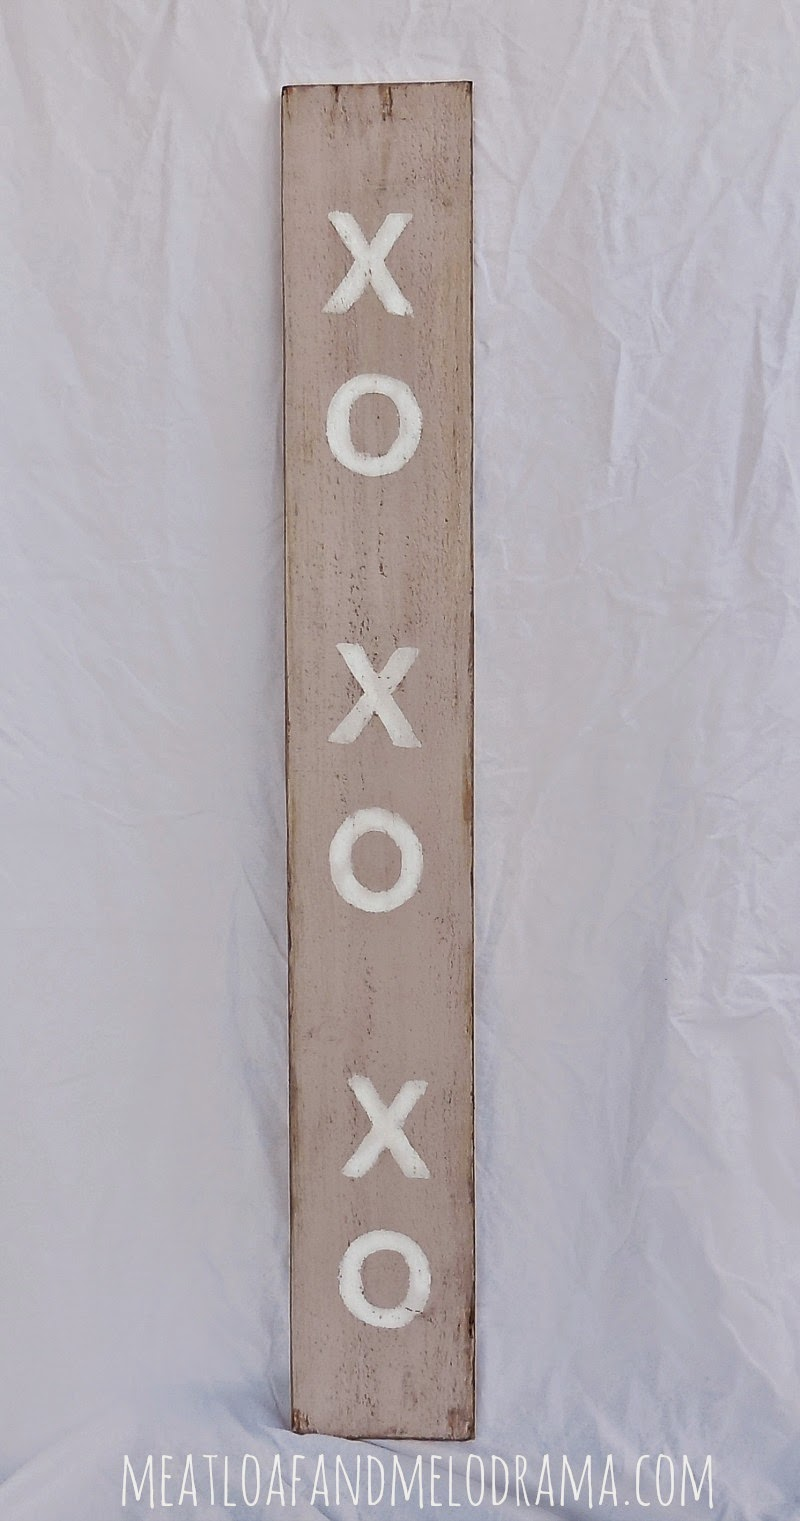 pink and white valentines day sign with xo xo and annie sloan paint